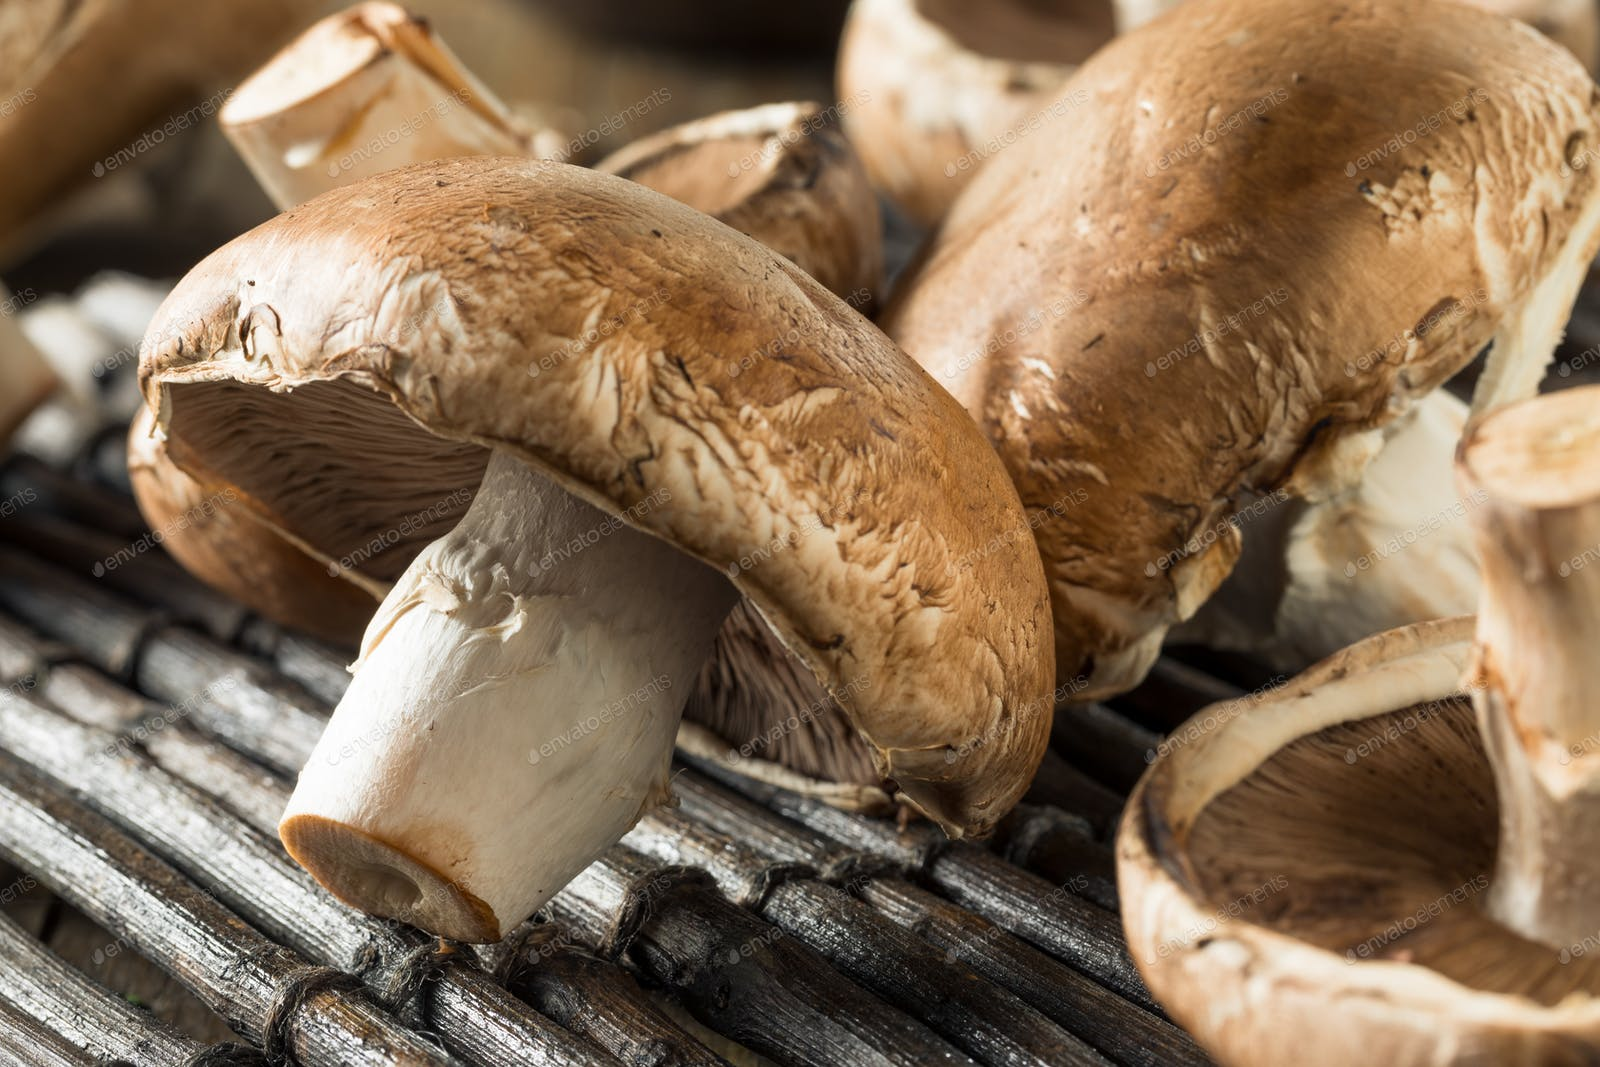 Raw Organic Portobello Mushrooms Photo By Bhofack2 On Envato Elements